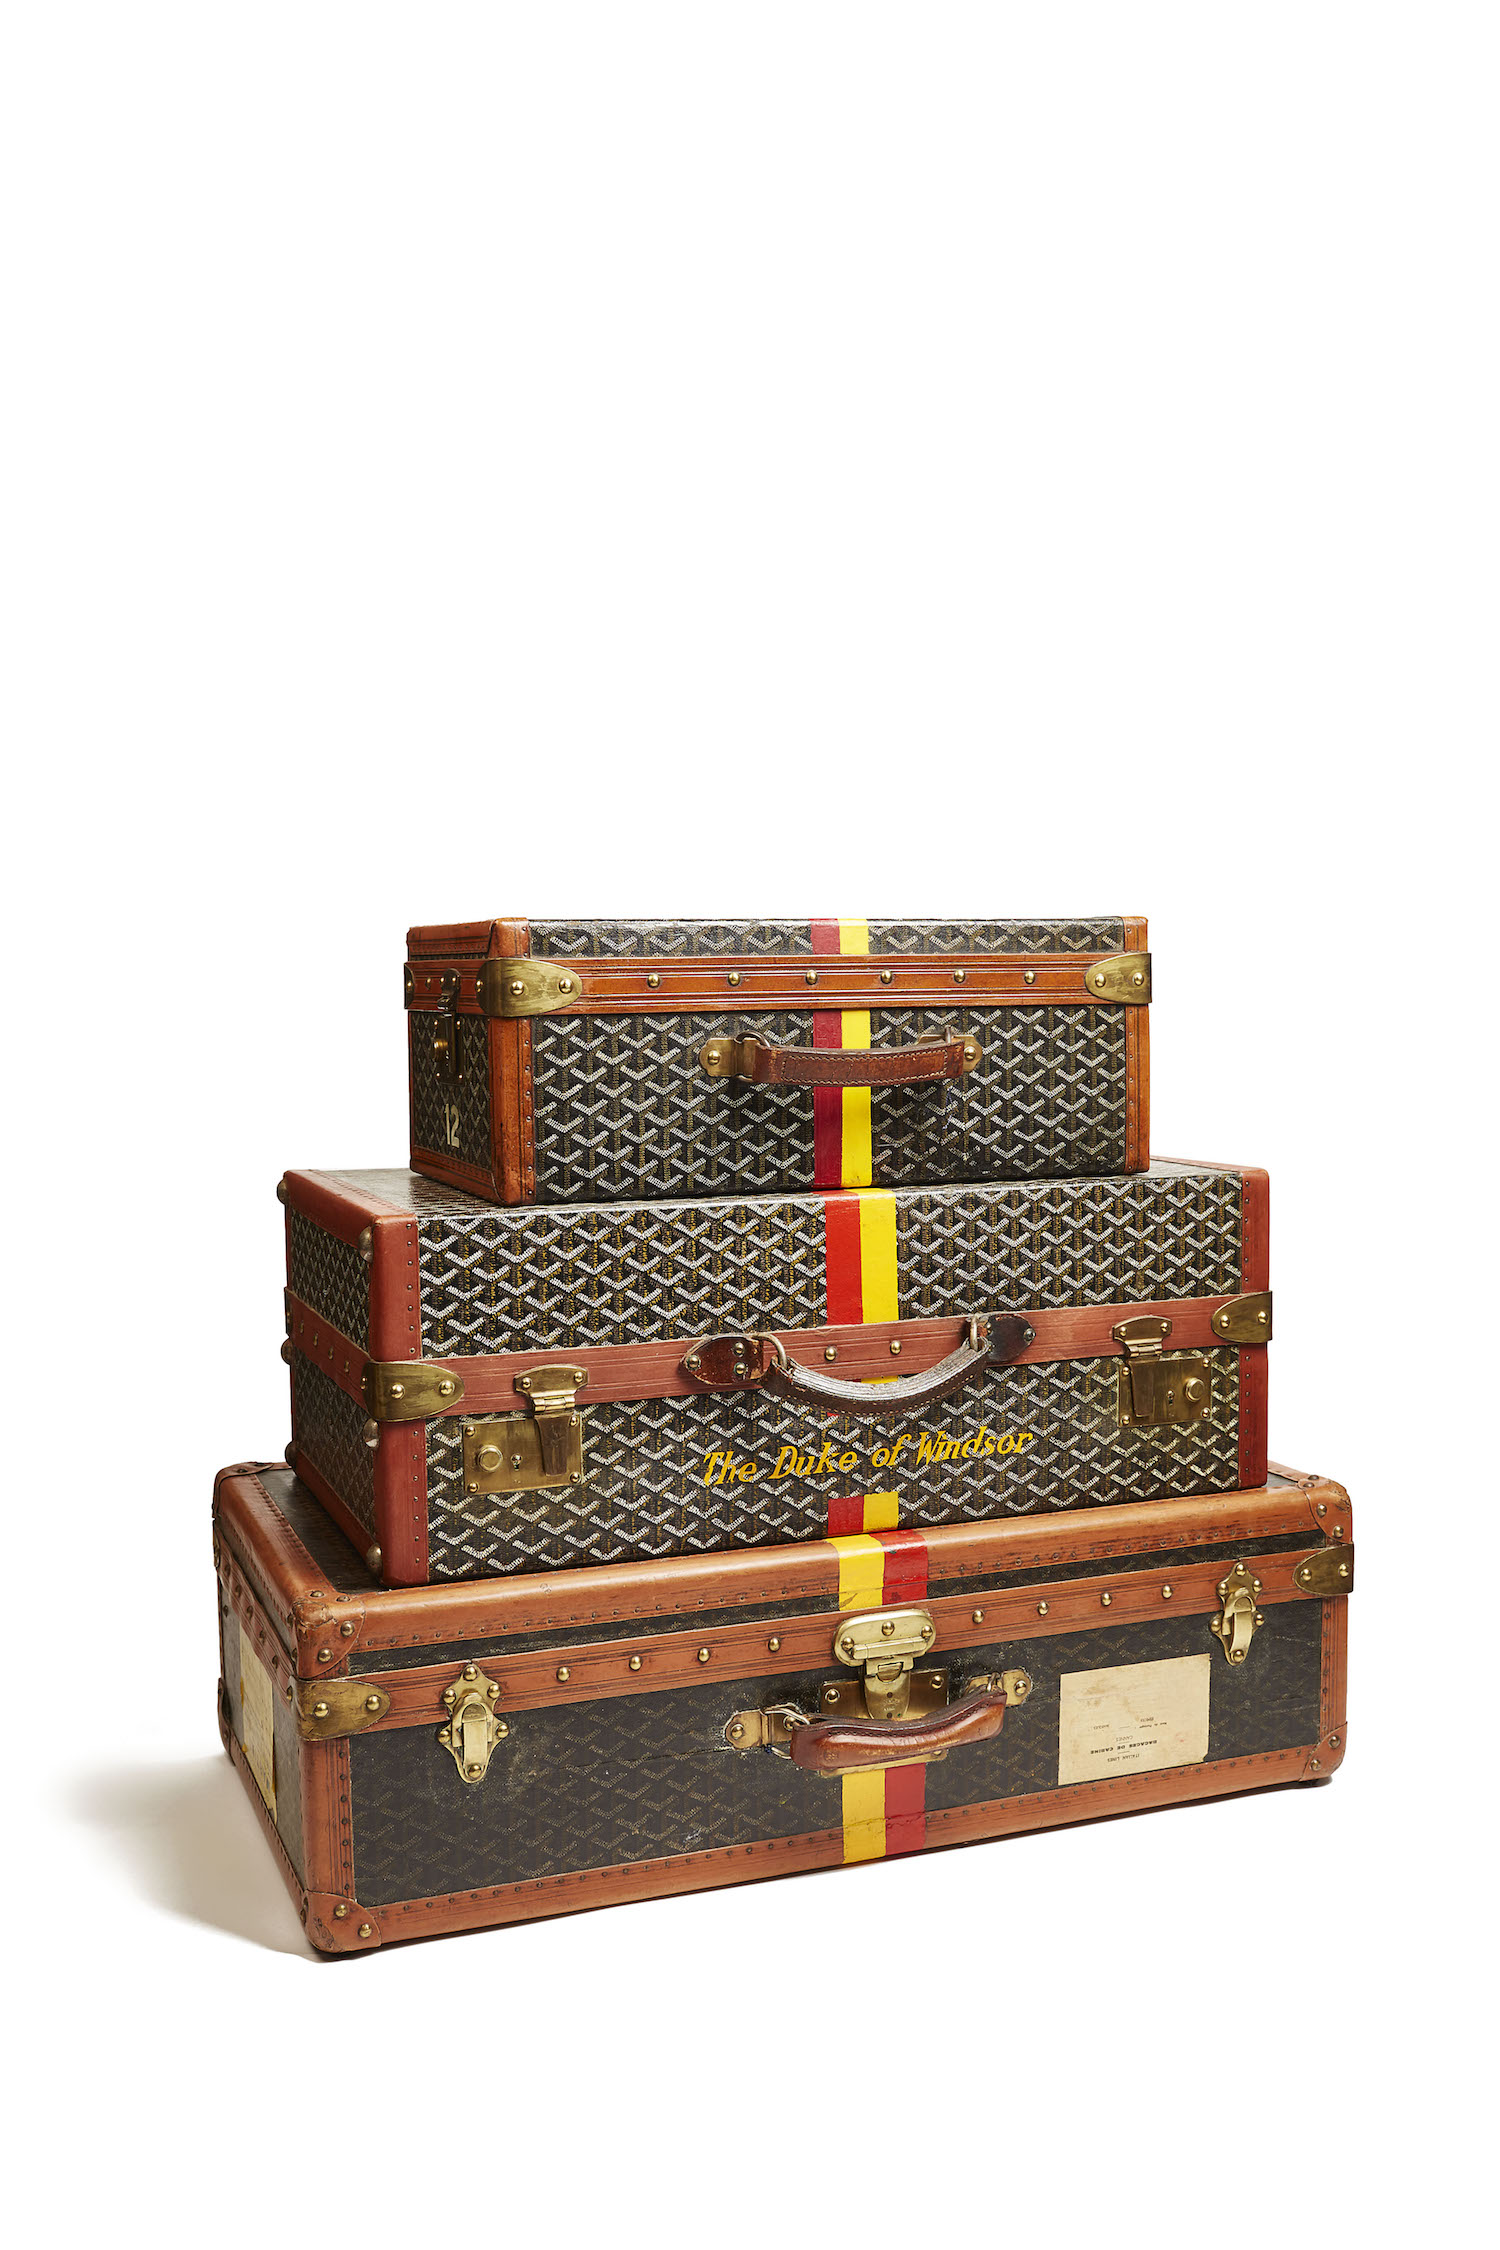 Duke and Duchess of Windsor's Luggage, Goyard, about 1950 © Miottel Museum, Berkeley, California. Photograph courtesy of Peabody Essex Museum, Salem, Massachusetts